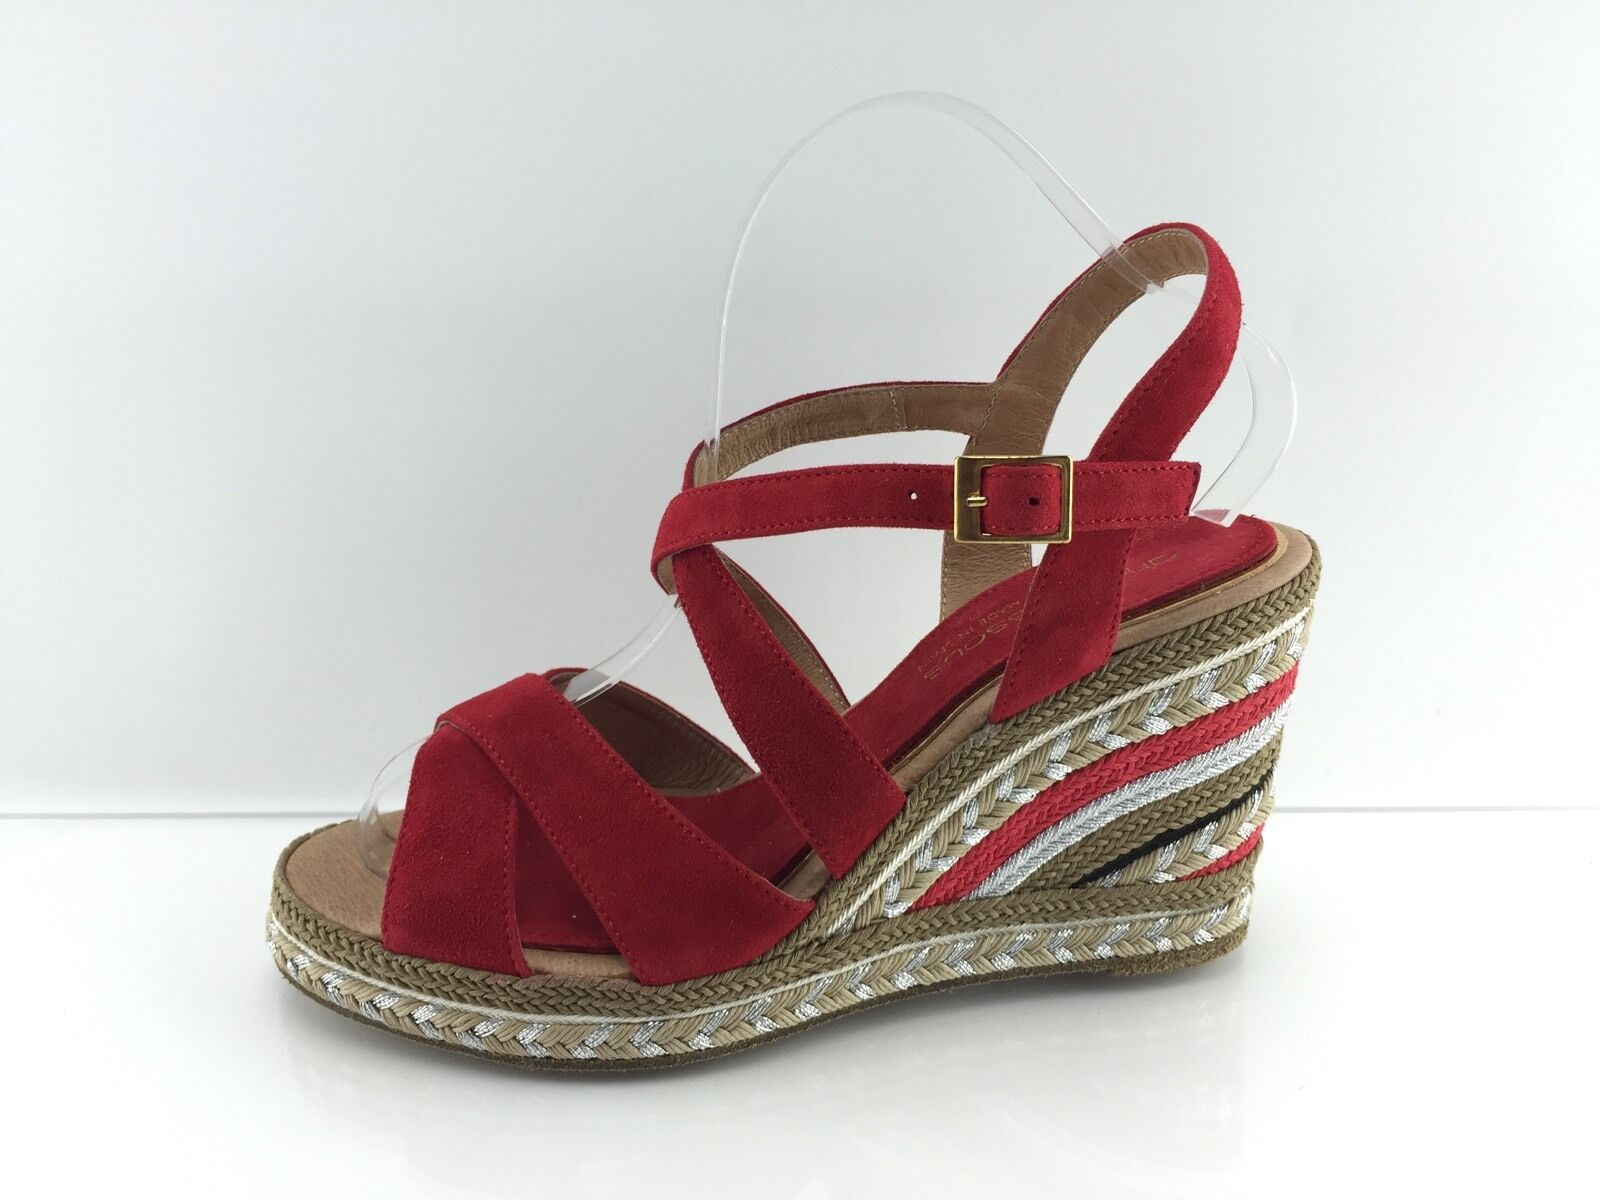 210 Andre Assous Dafina Wouomo rosso Suede Wedges 7.5